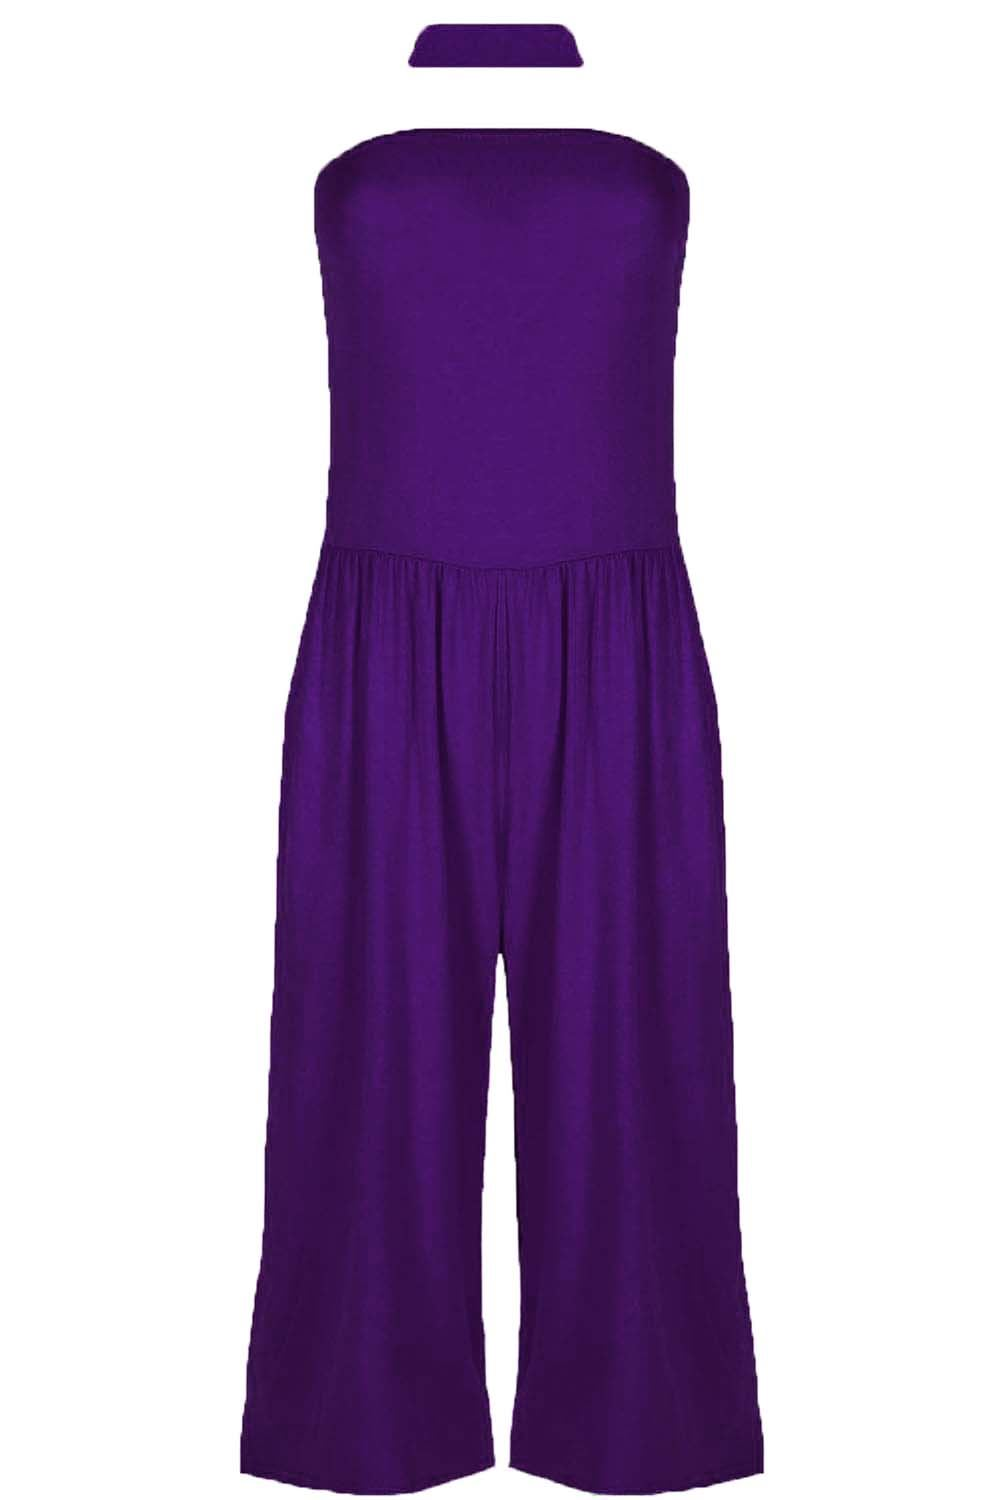 Womens-3-4-Playsuit-Ladies-Boob-Tube-Palazzo-Wide-Legs-Jumpsuit-All-In-One-Piece